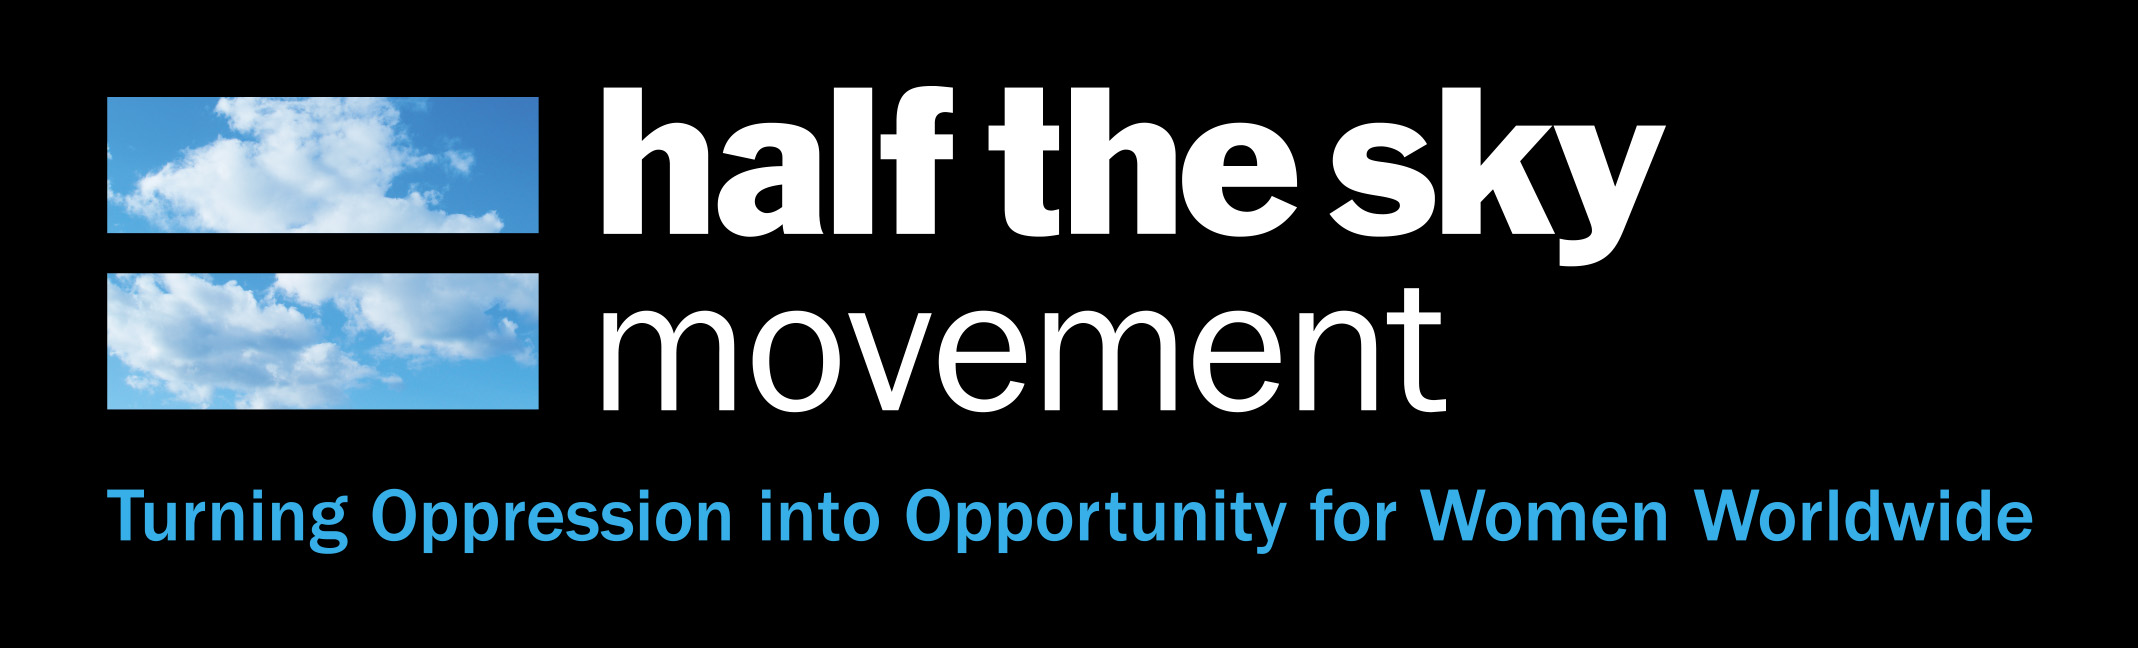 Half the Sky Movement logo